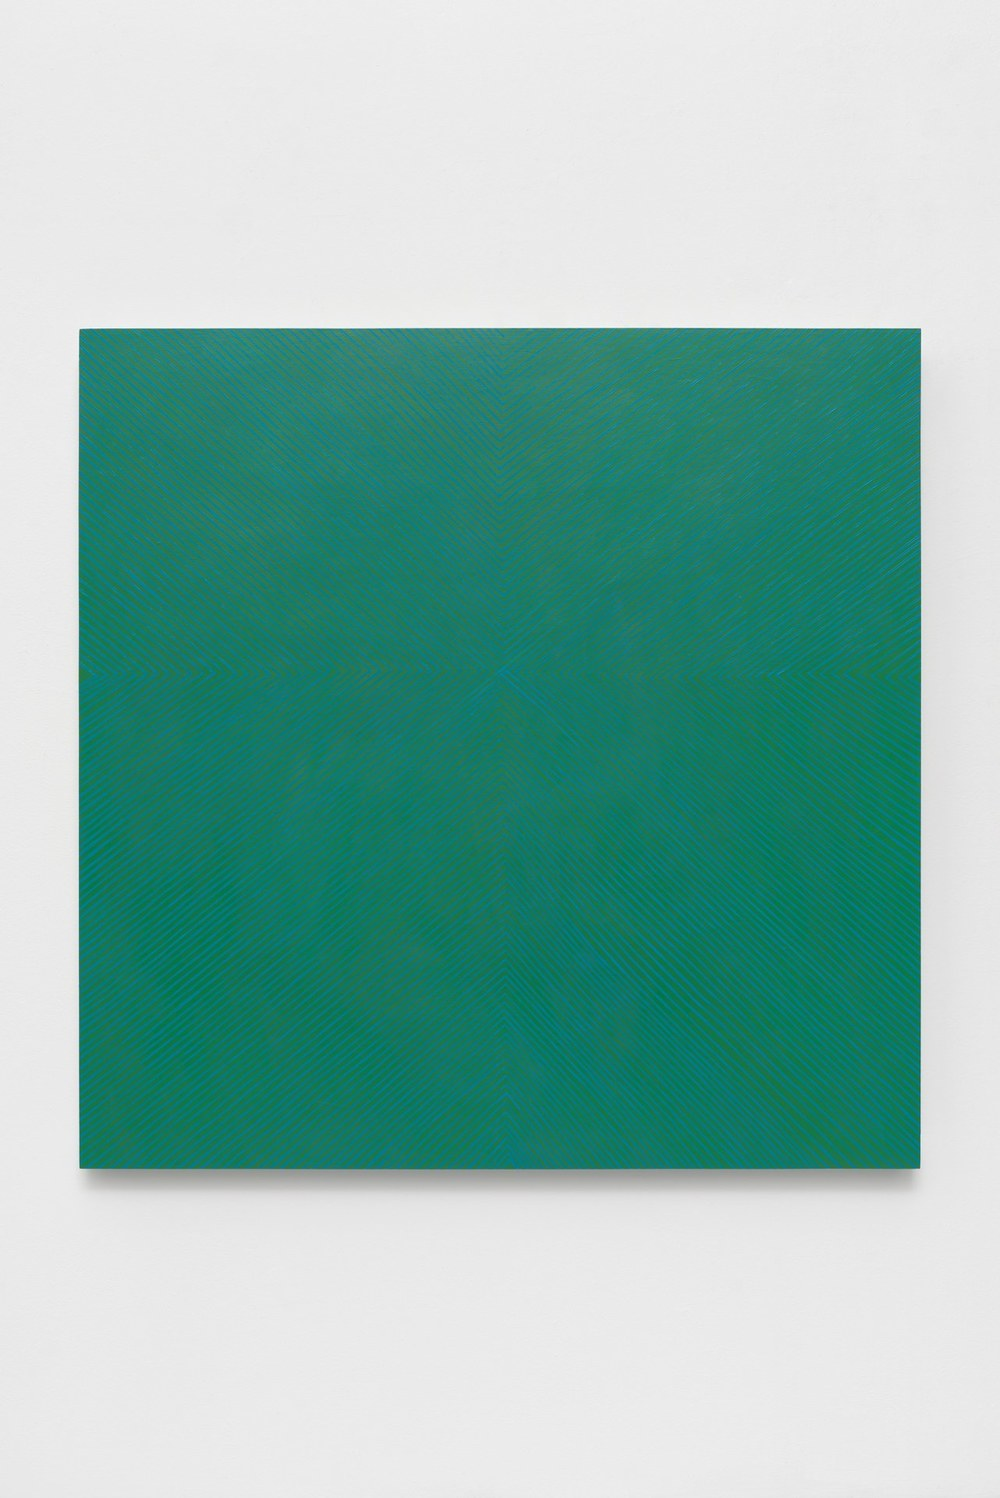 Mel Prest Jade Emerald, 2015 acrylic on panel  48 x 48 x 2 inches